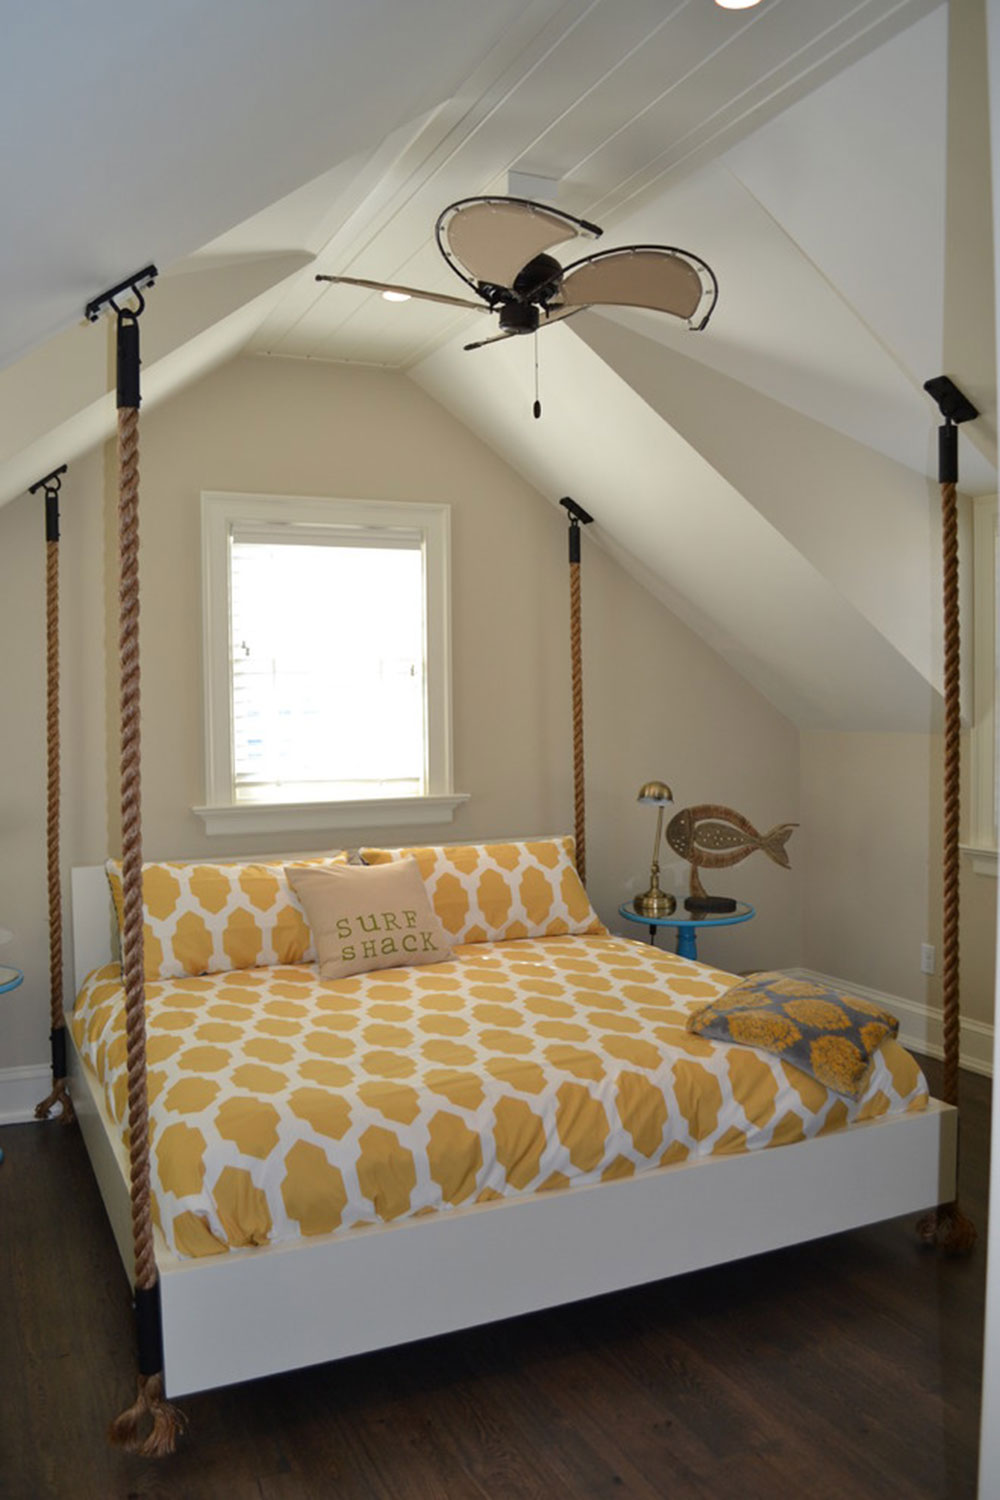 Hanging bed chains - Creative Hanging Beds Ideas For Amazing Homes16 Creative Hanging Beds